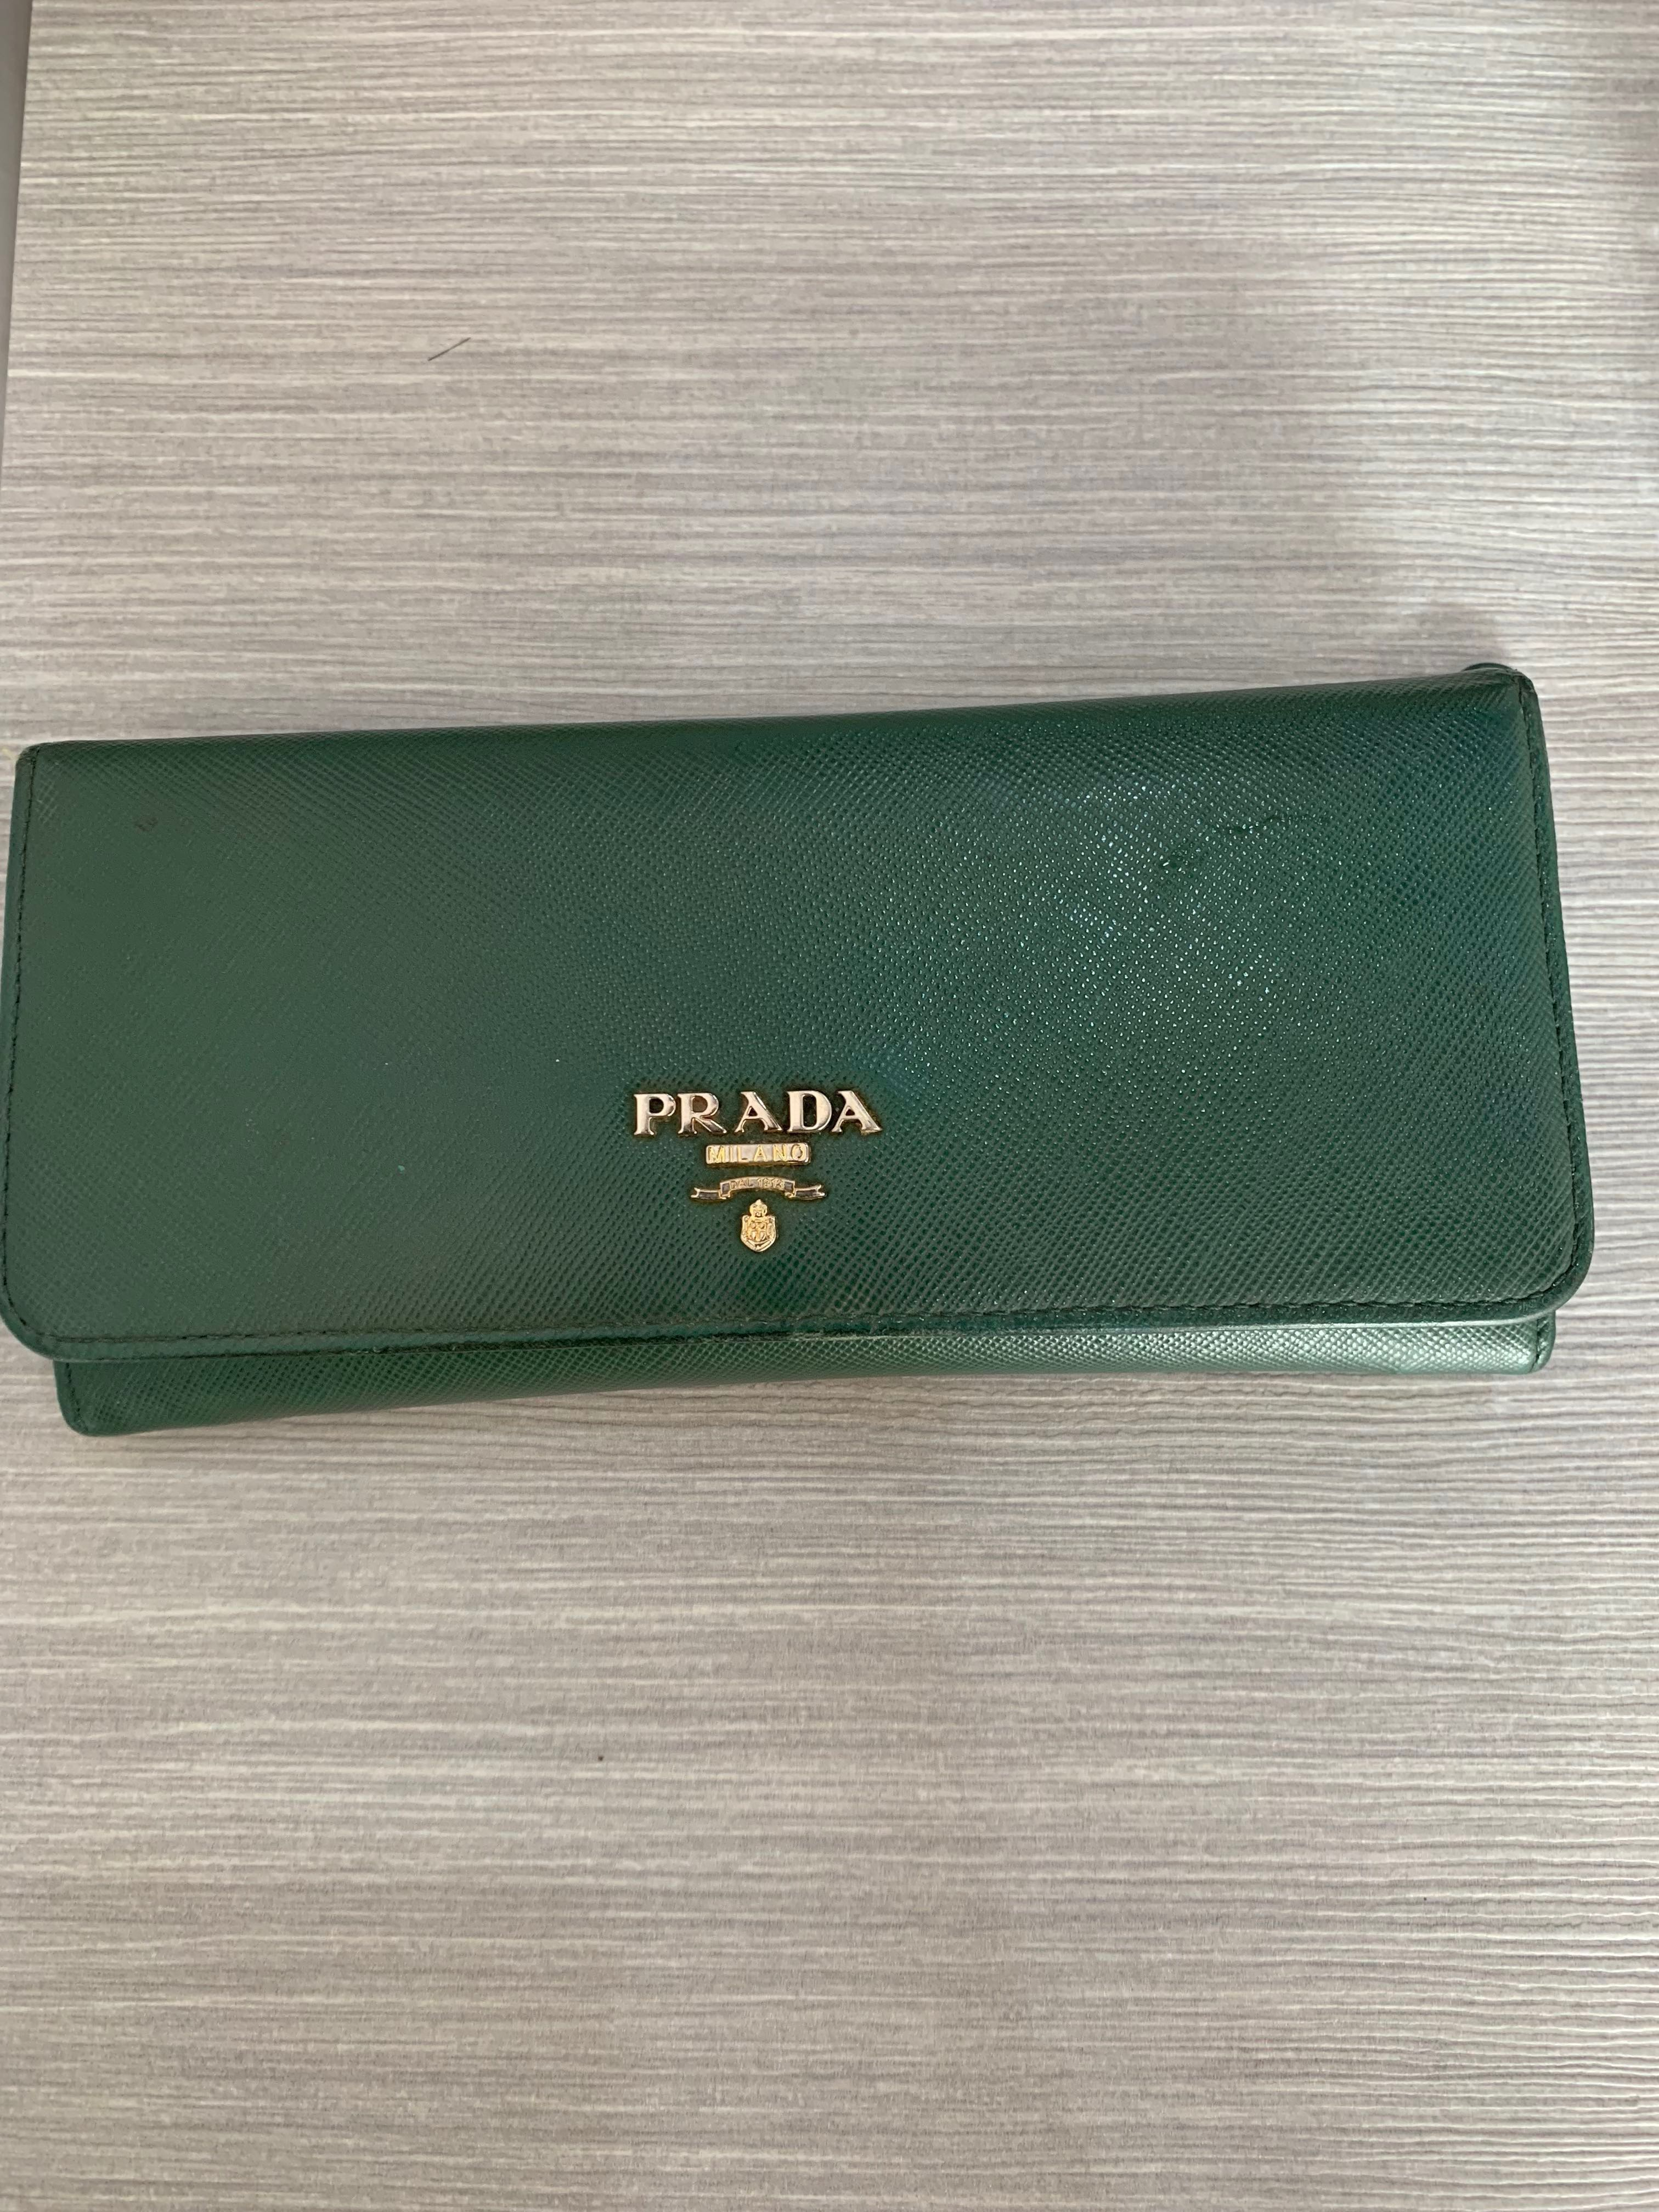 fd230ebb7429 Prada Saffiano Long Wallet, Women's Fashion, Bags & Wallets, Wallets ...